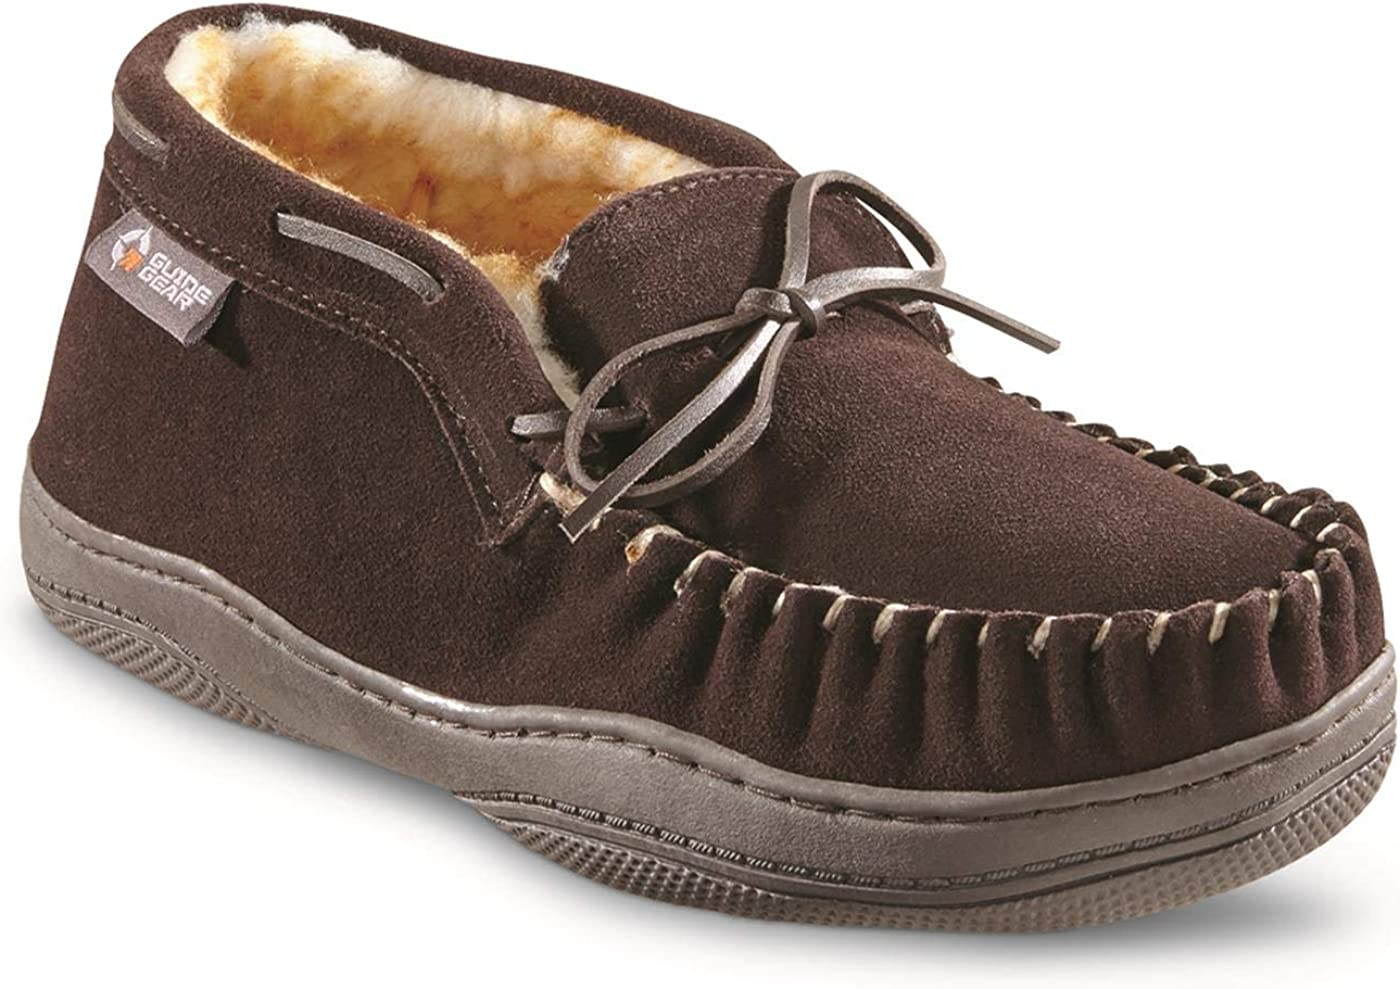 Safety and trust Guide Gear Men's Suede Chukka SEAL limited product Slippers Moccasin